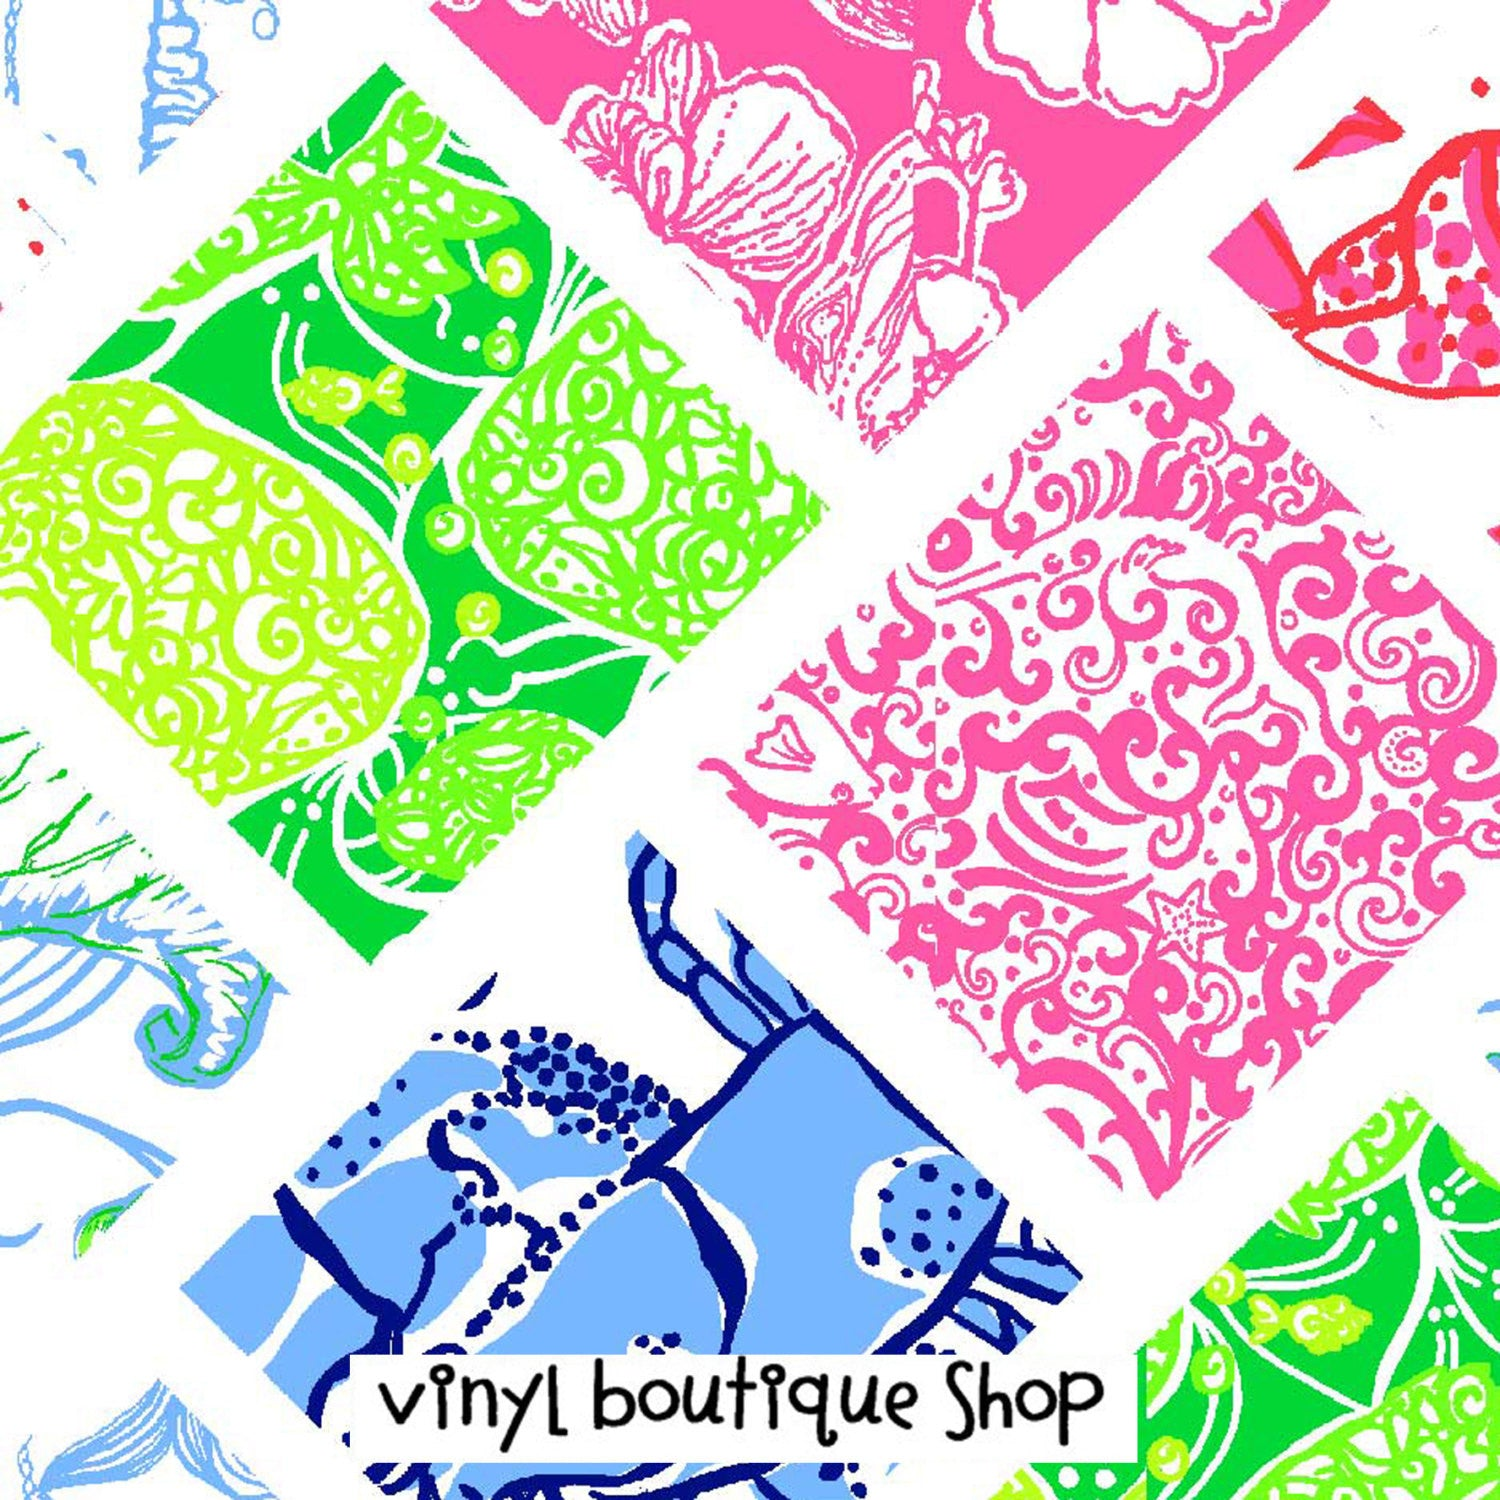 Patchwork Piece Lilly Inspired Printed Patterned Craft Vinyl - Vinyl Boutique Shop